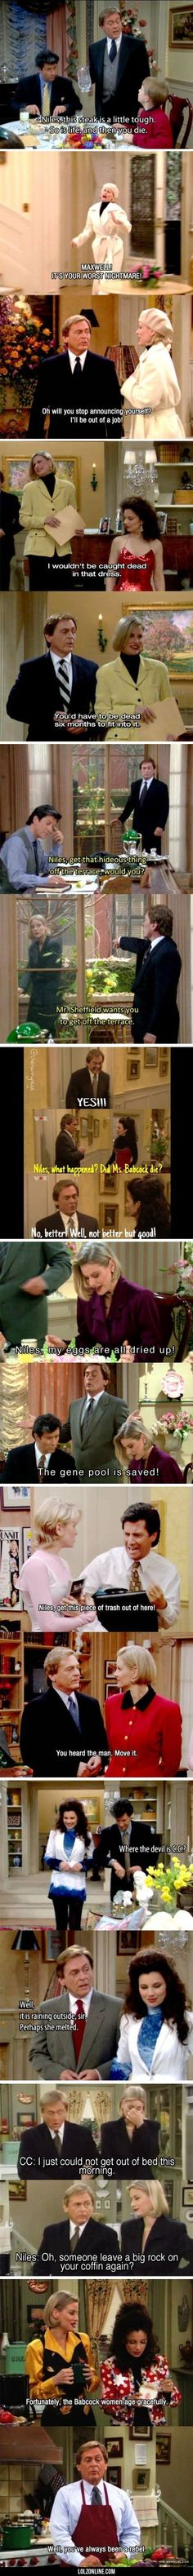 Niles, The Original Burn Master#funny #lol #lolzonline << WHO IS THIS MAN??